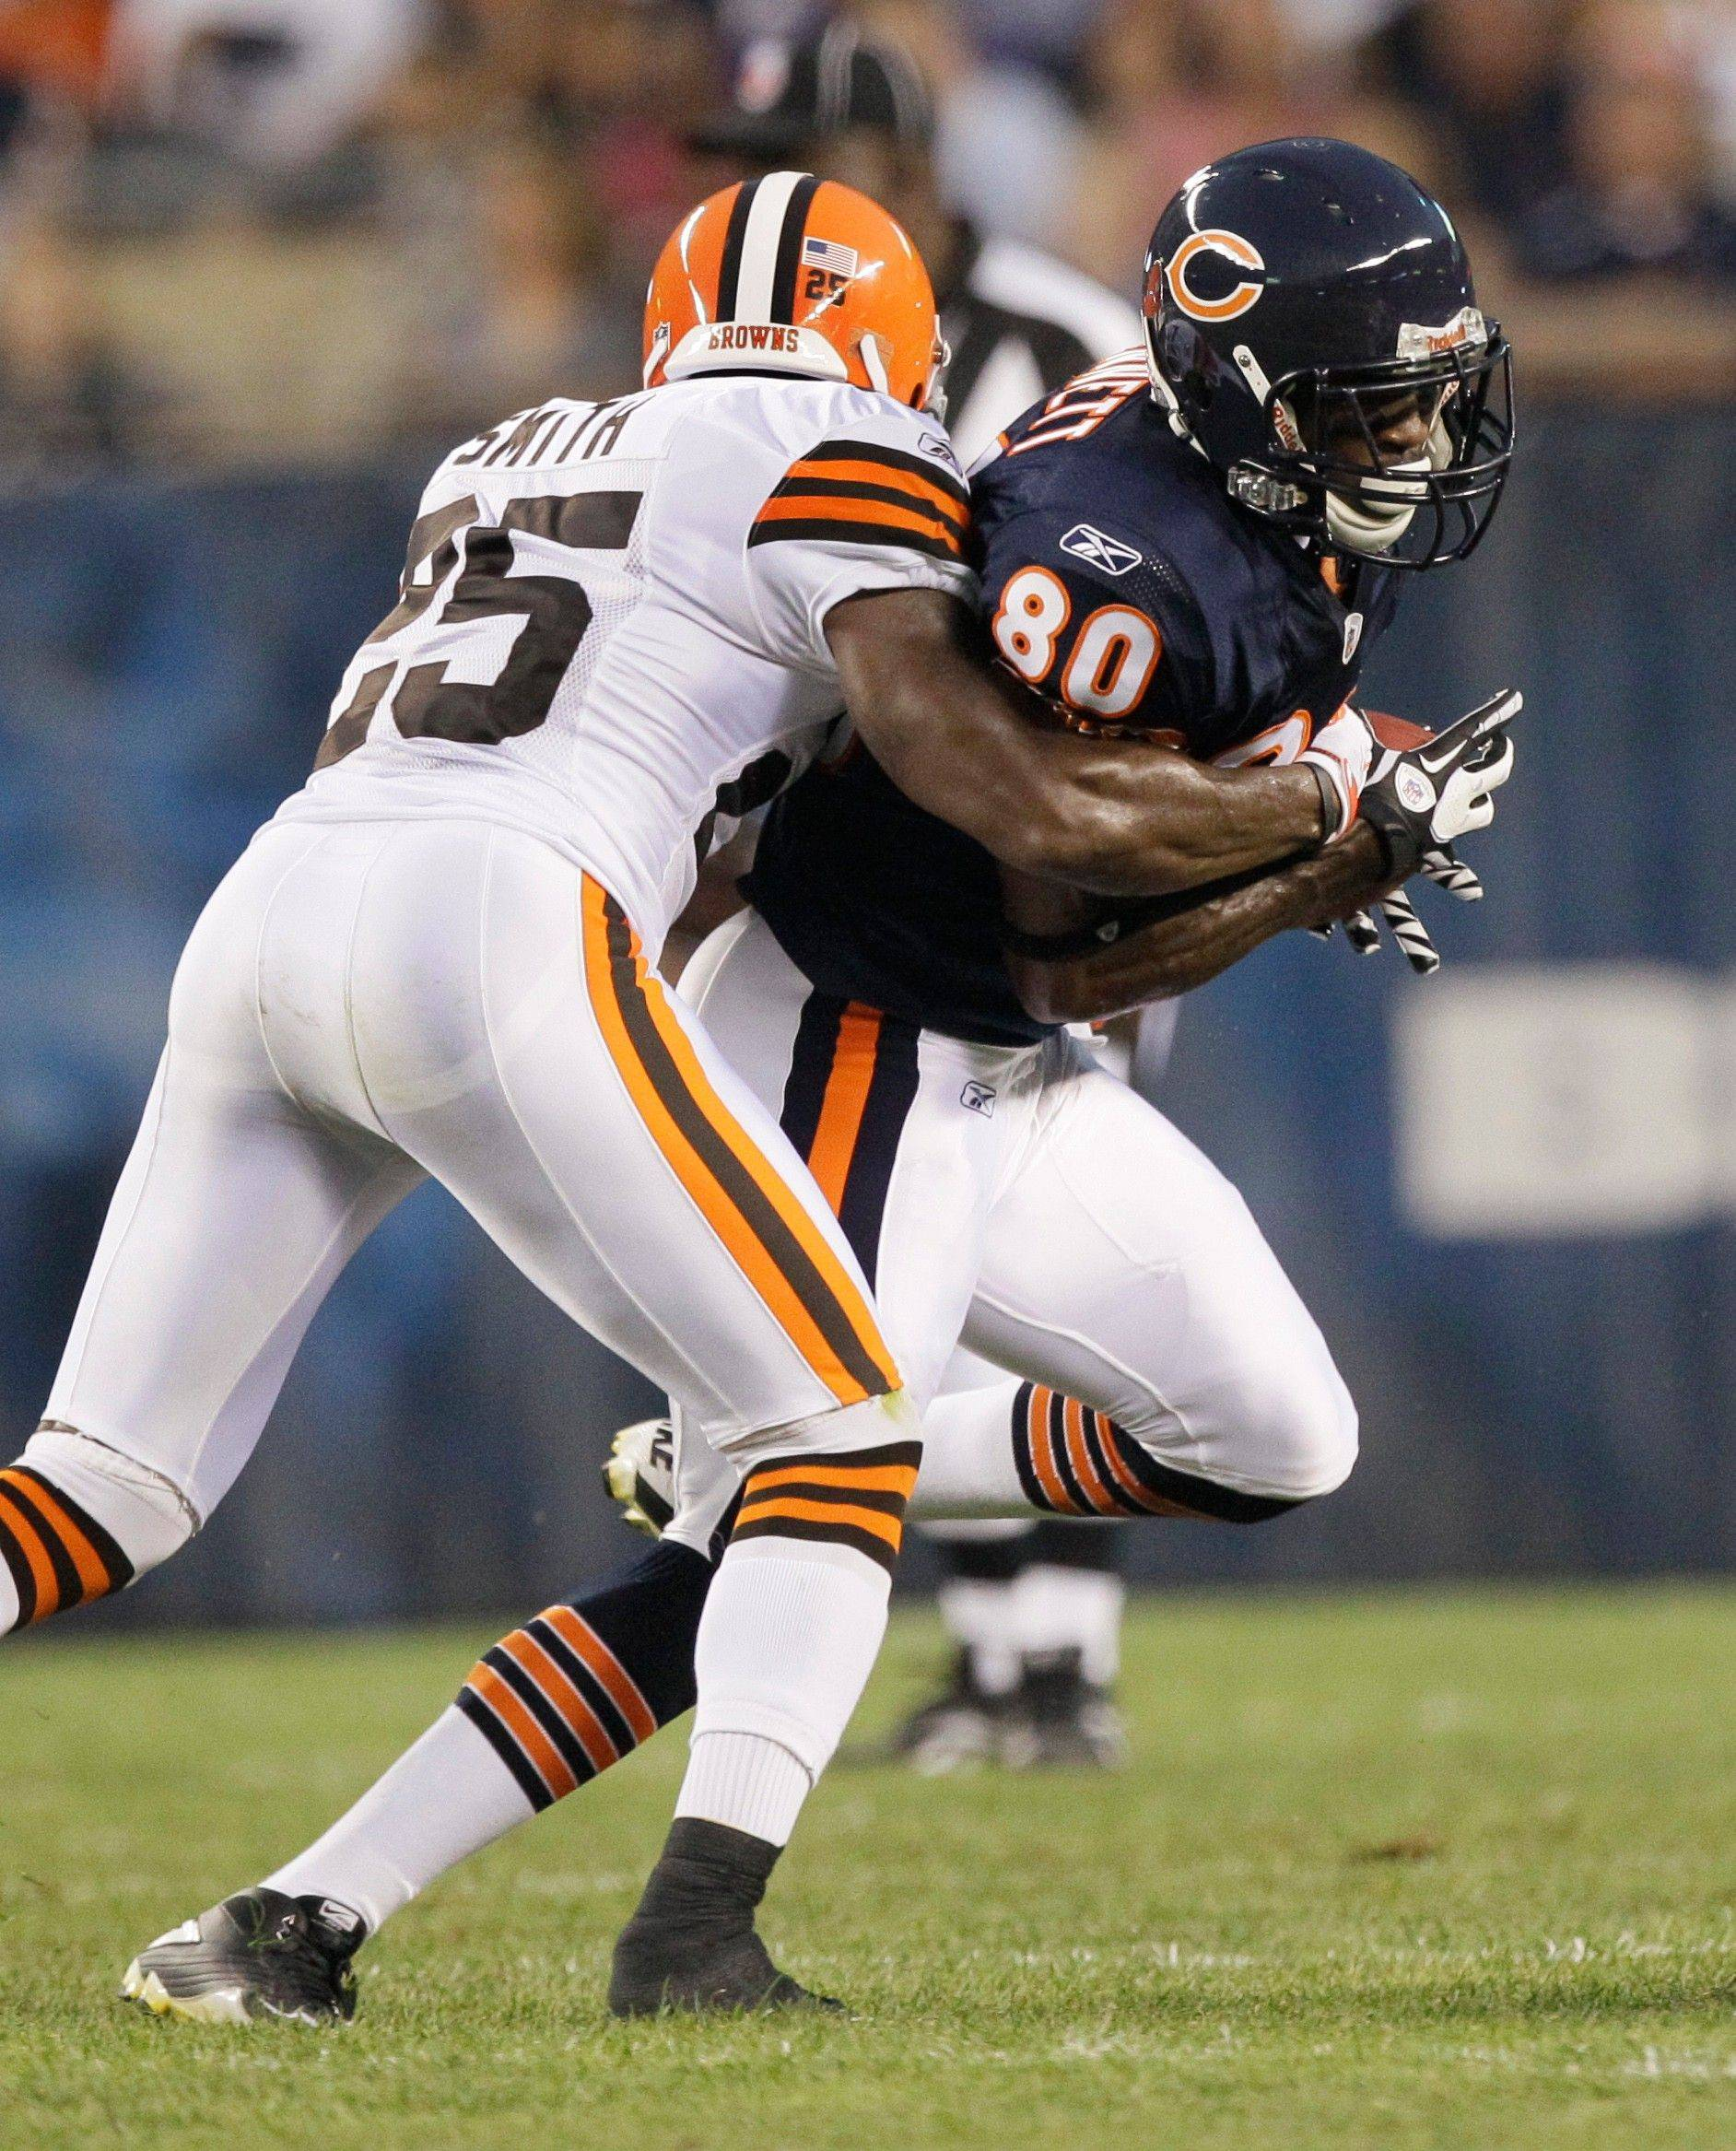 Chicago Bears wide receiver Earl Bennett is tackled by Cleveland Browns defensive back DeAngelo Smith after a reception in the first half.